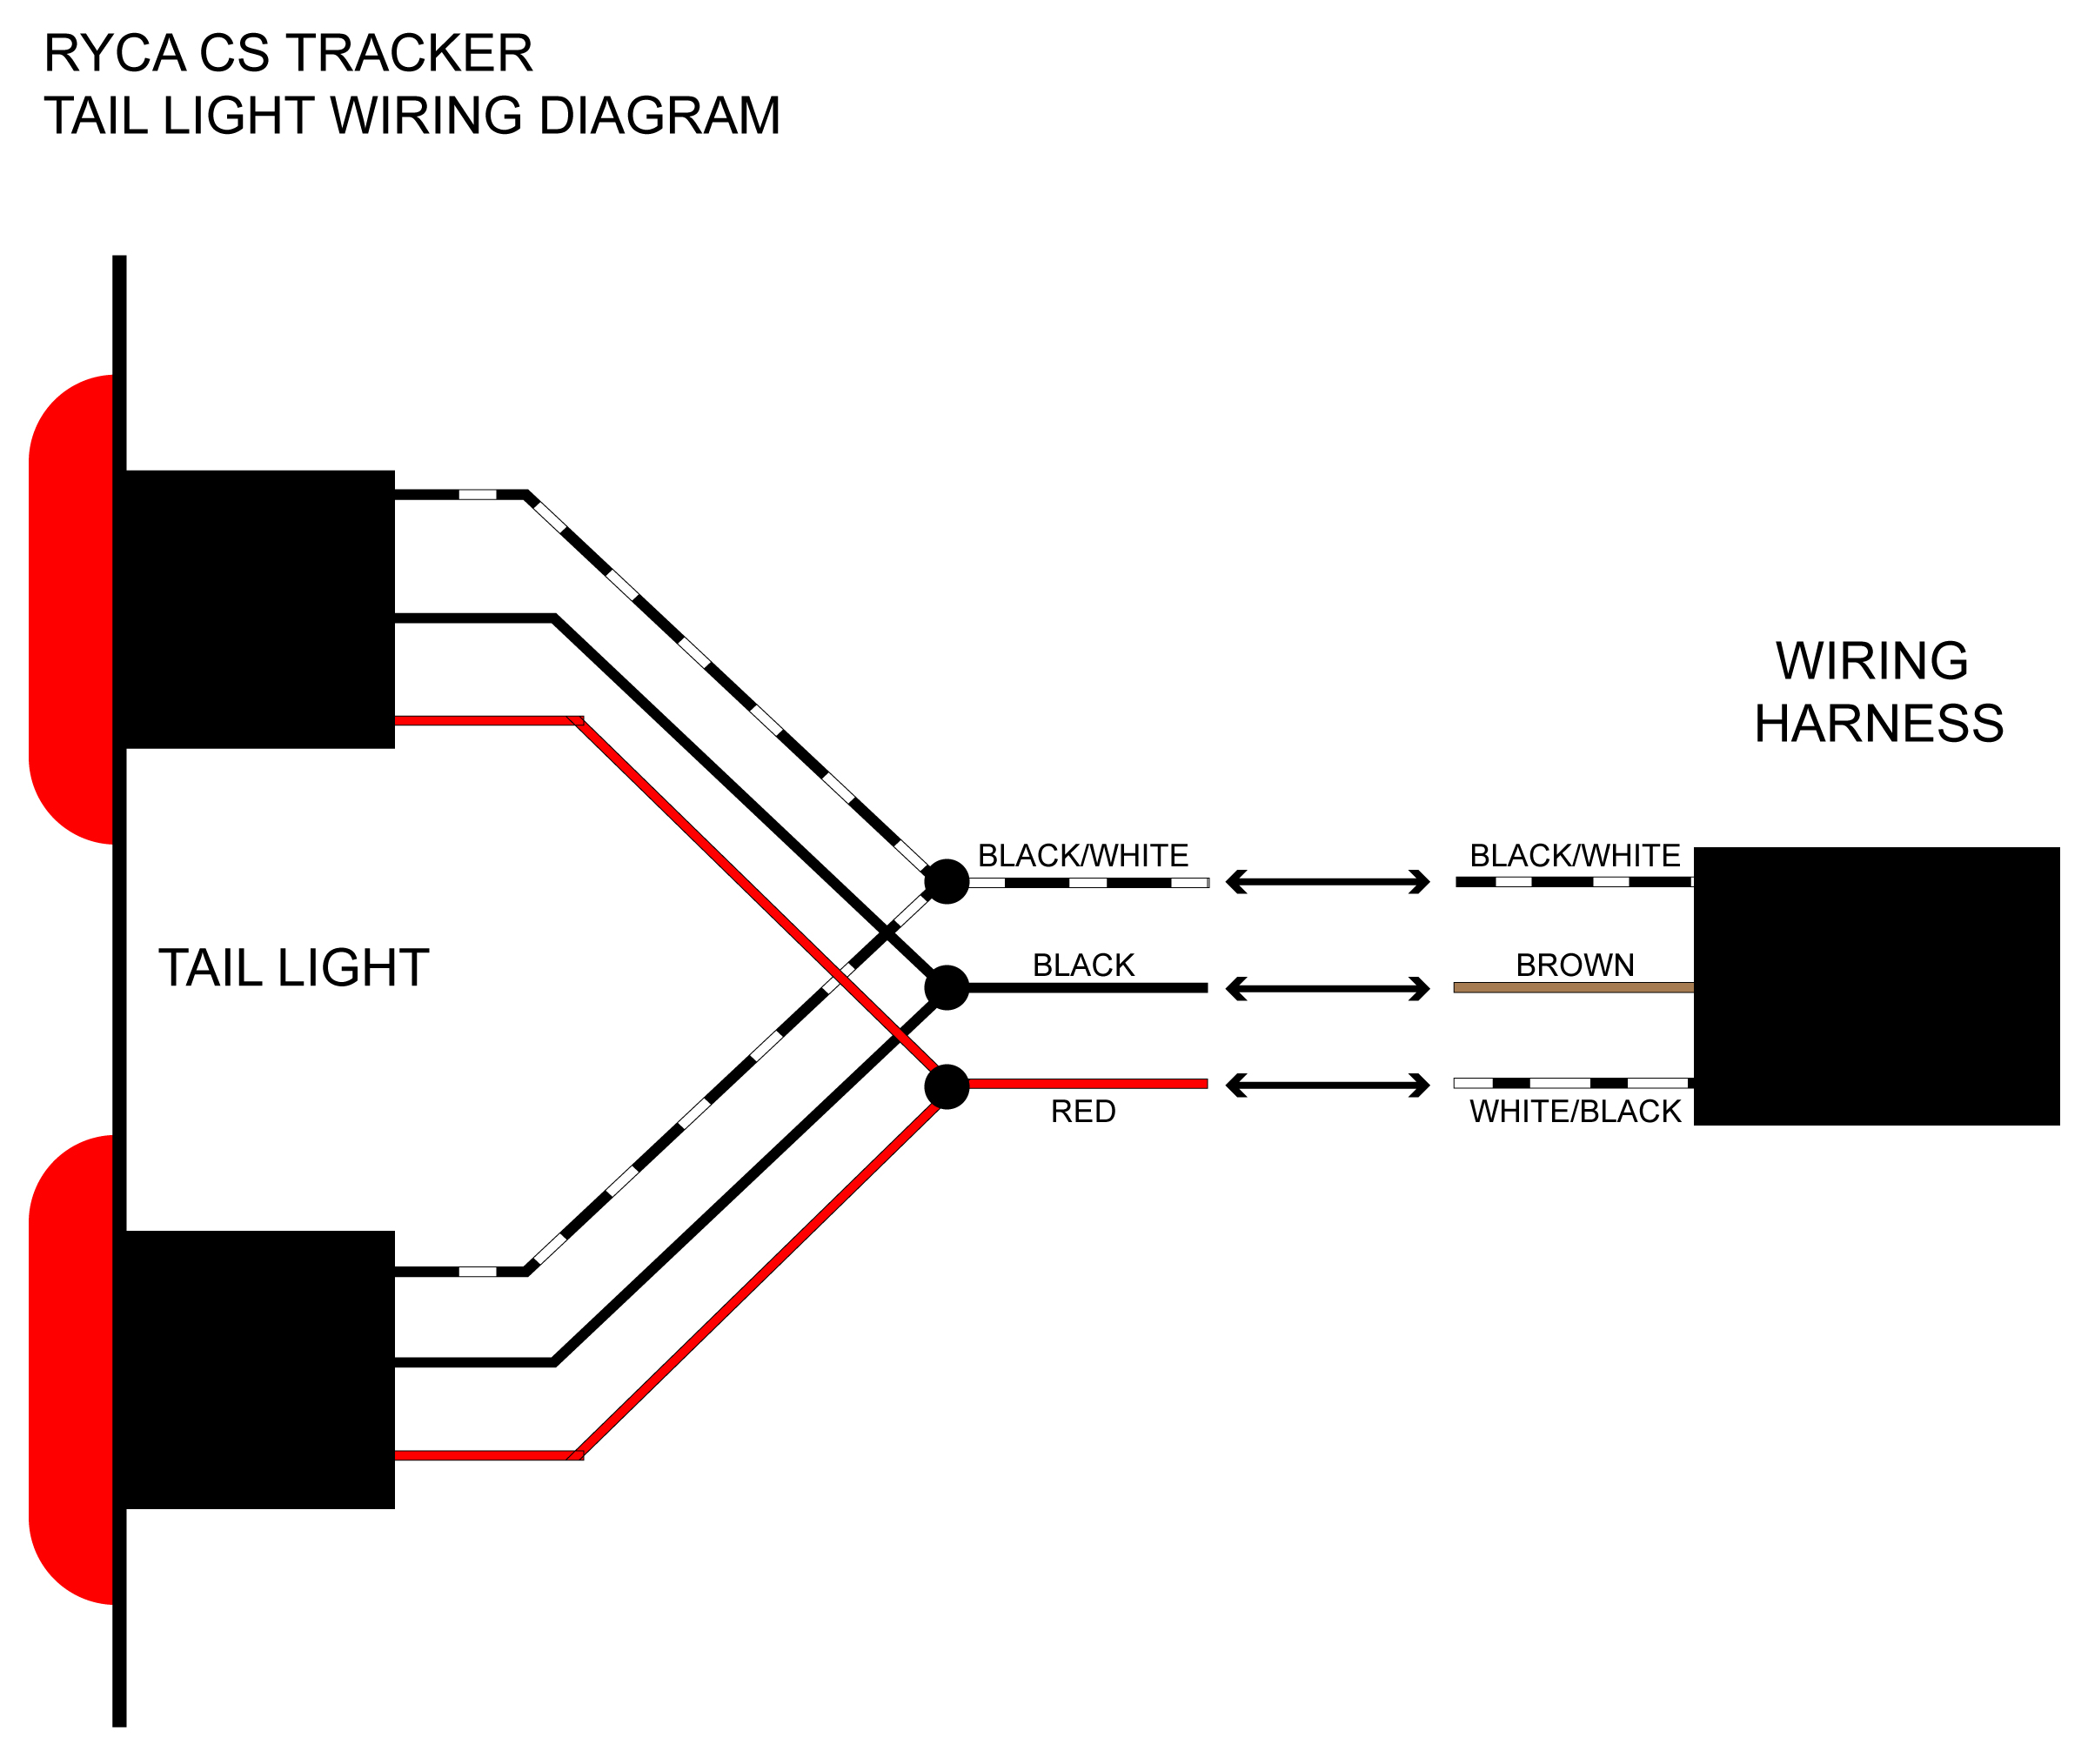 Trailer Tail Light Wiring - Data Wiring Diagram Today - Trailer Brake Light Wiring Diagram